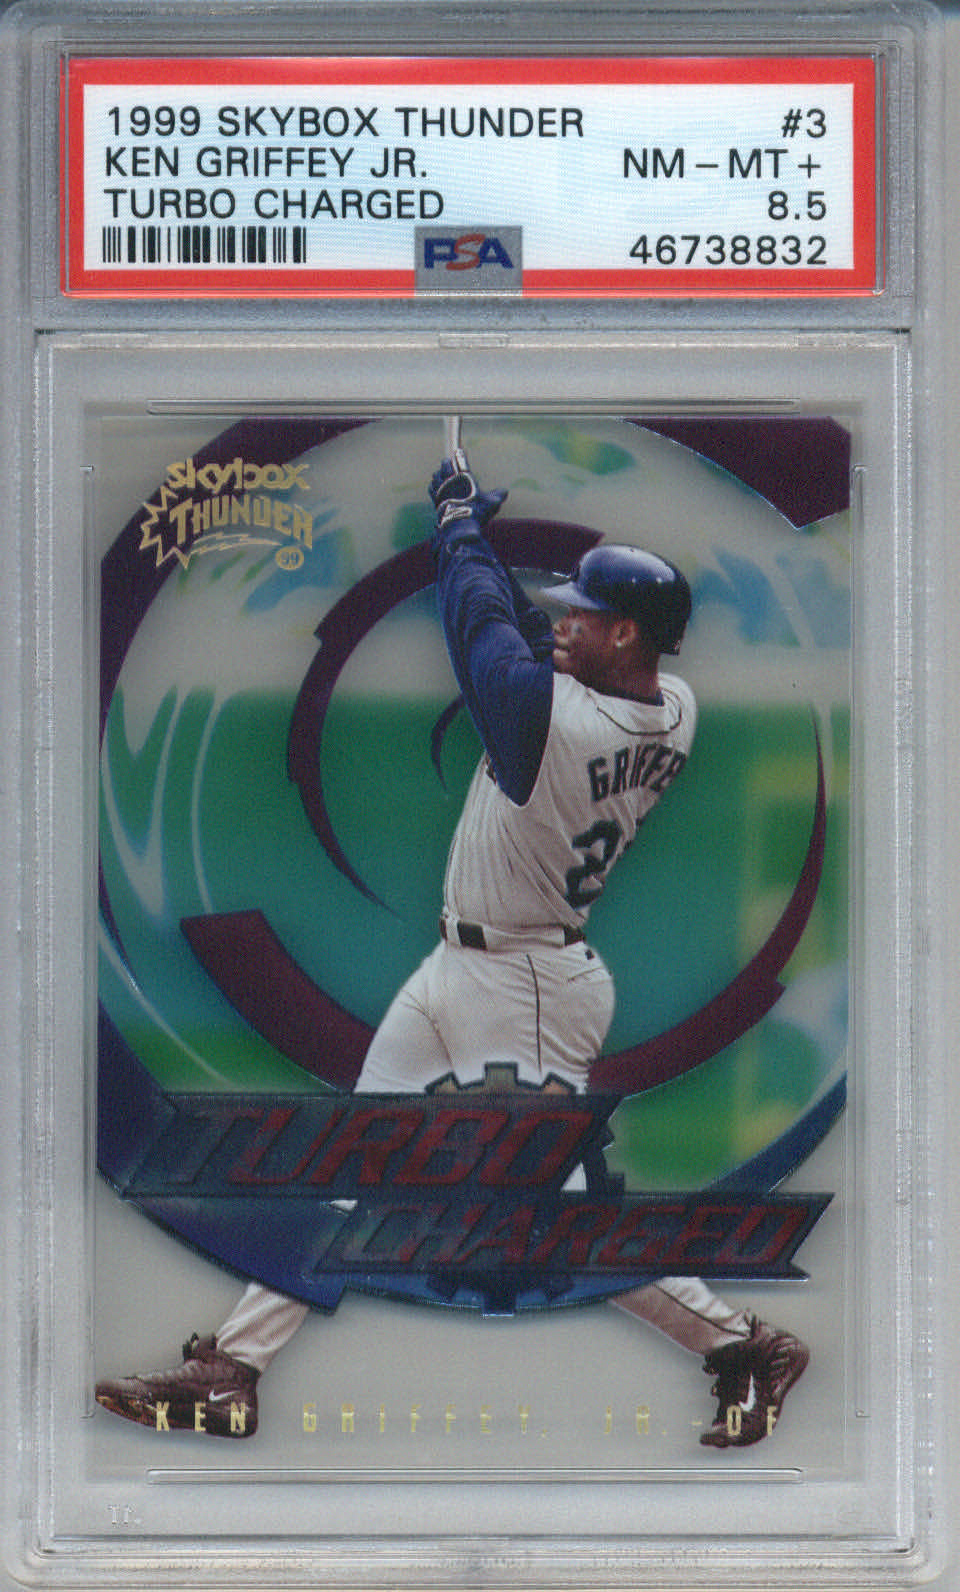 1999 Skybox Thunder Turbo Charged #3 Ken Griffey Jr. PSA 8.5